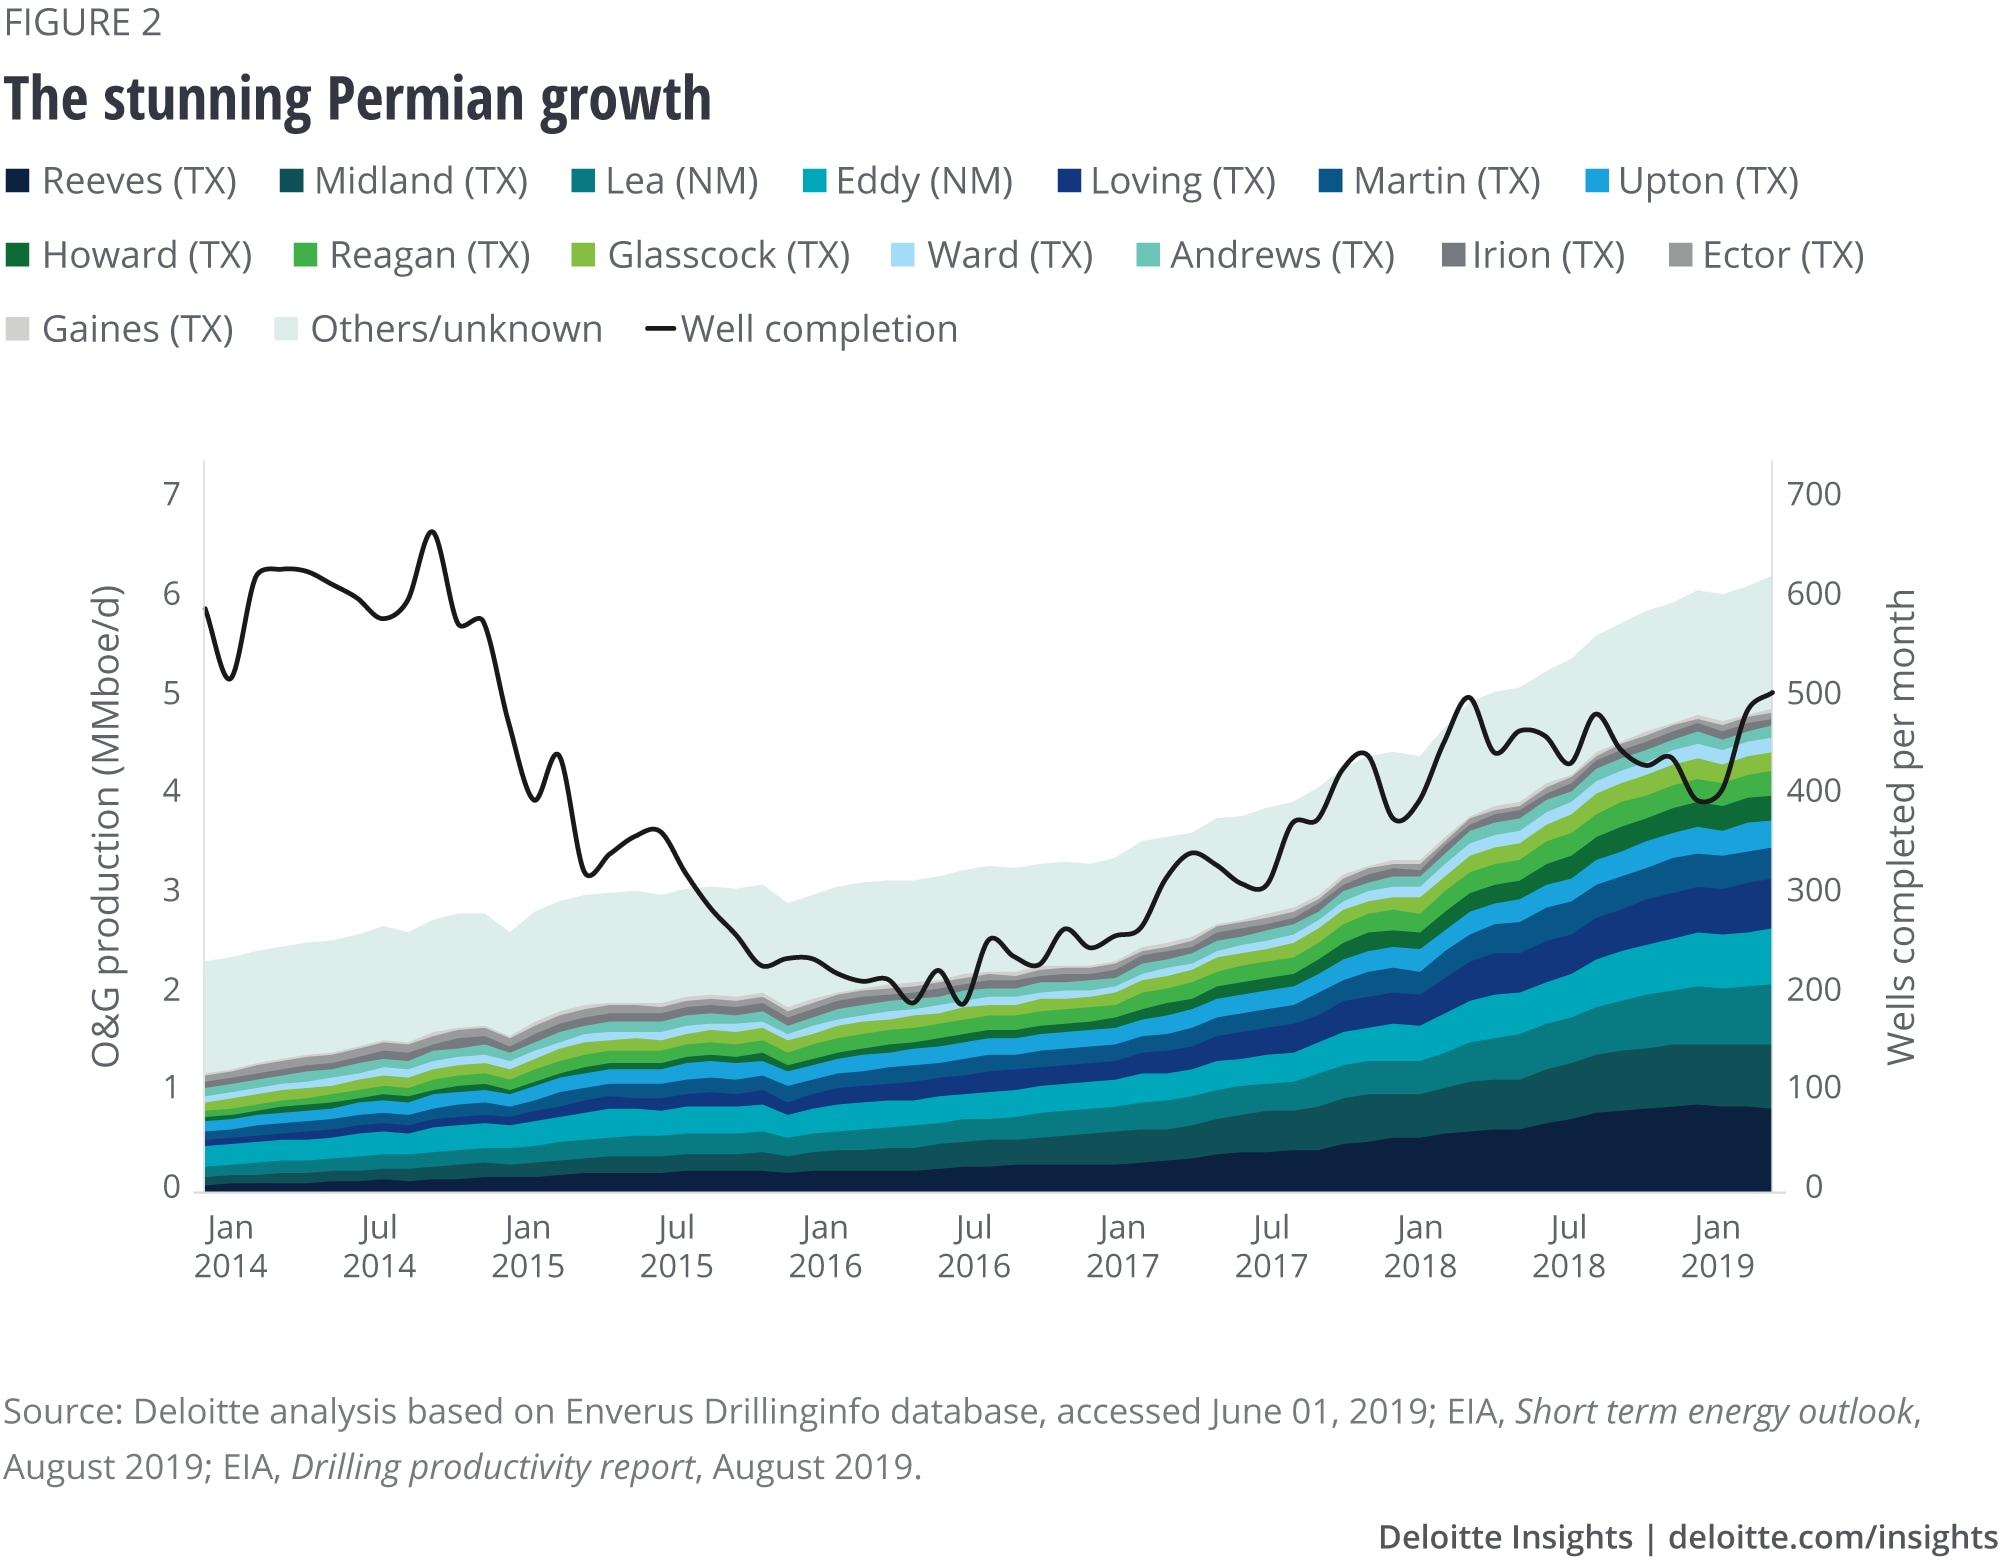 The stunning Permian growth